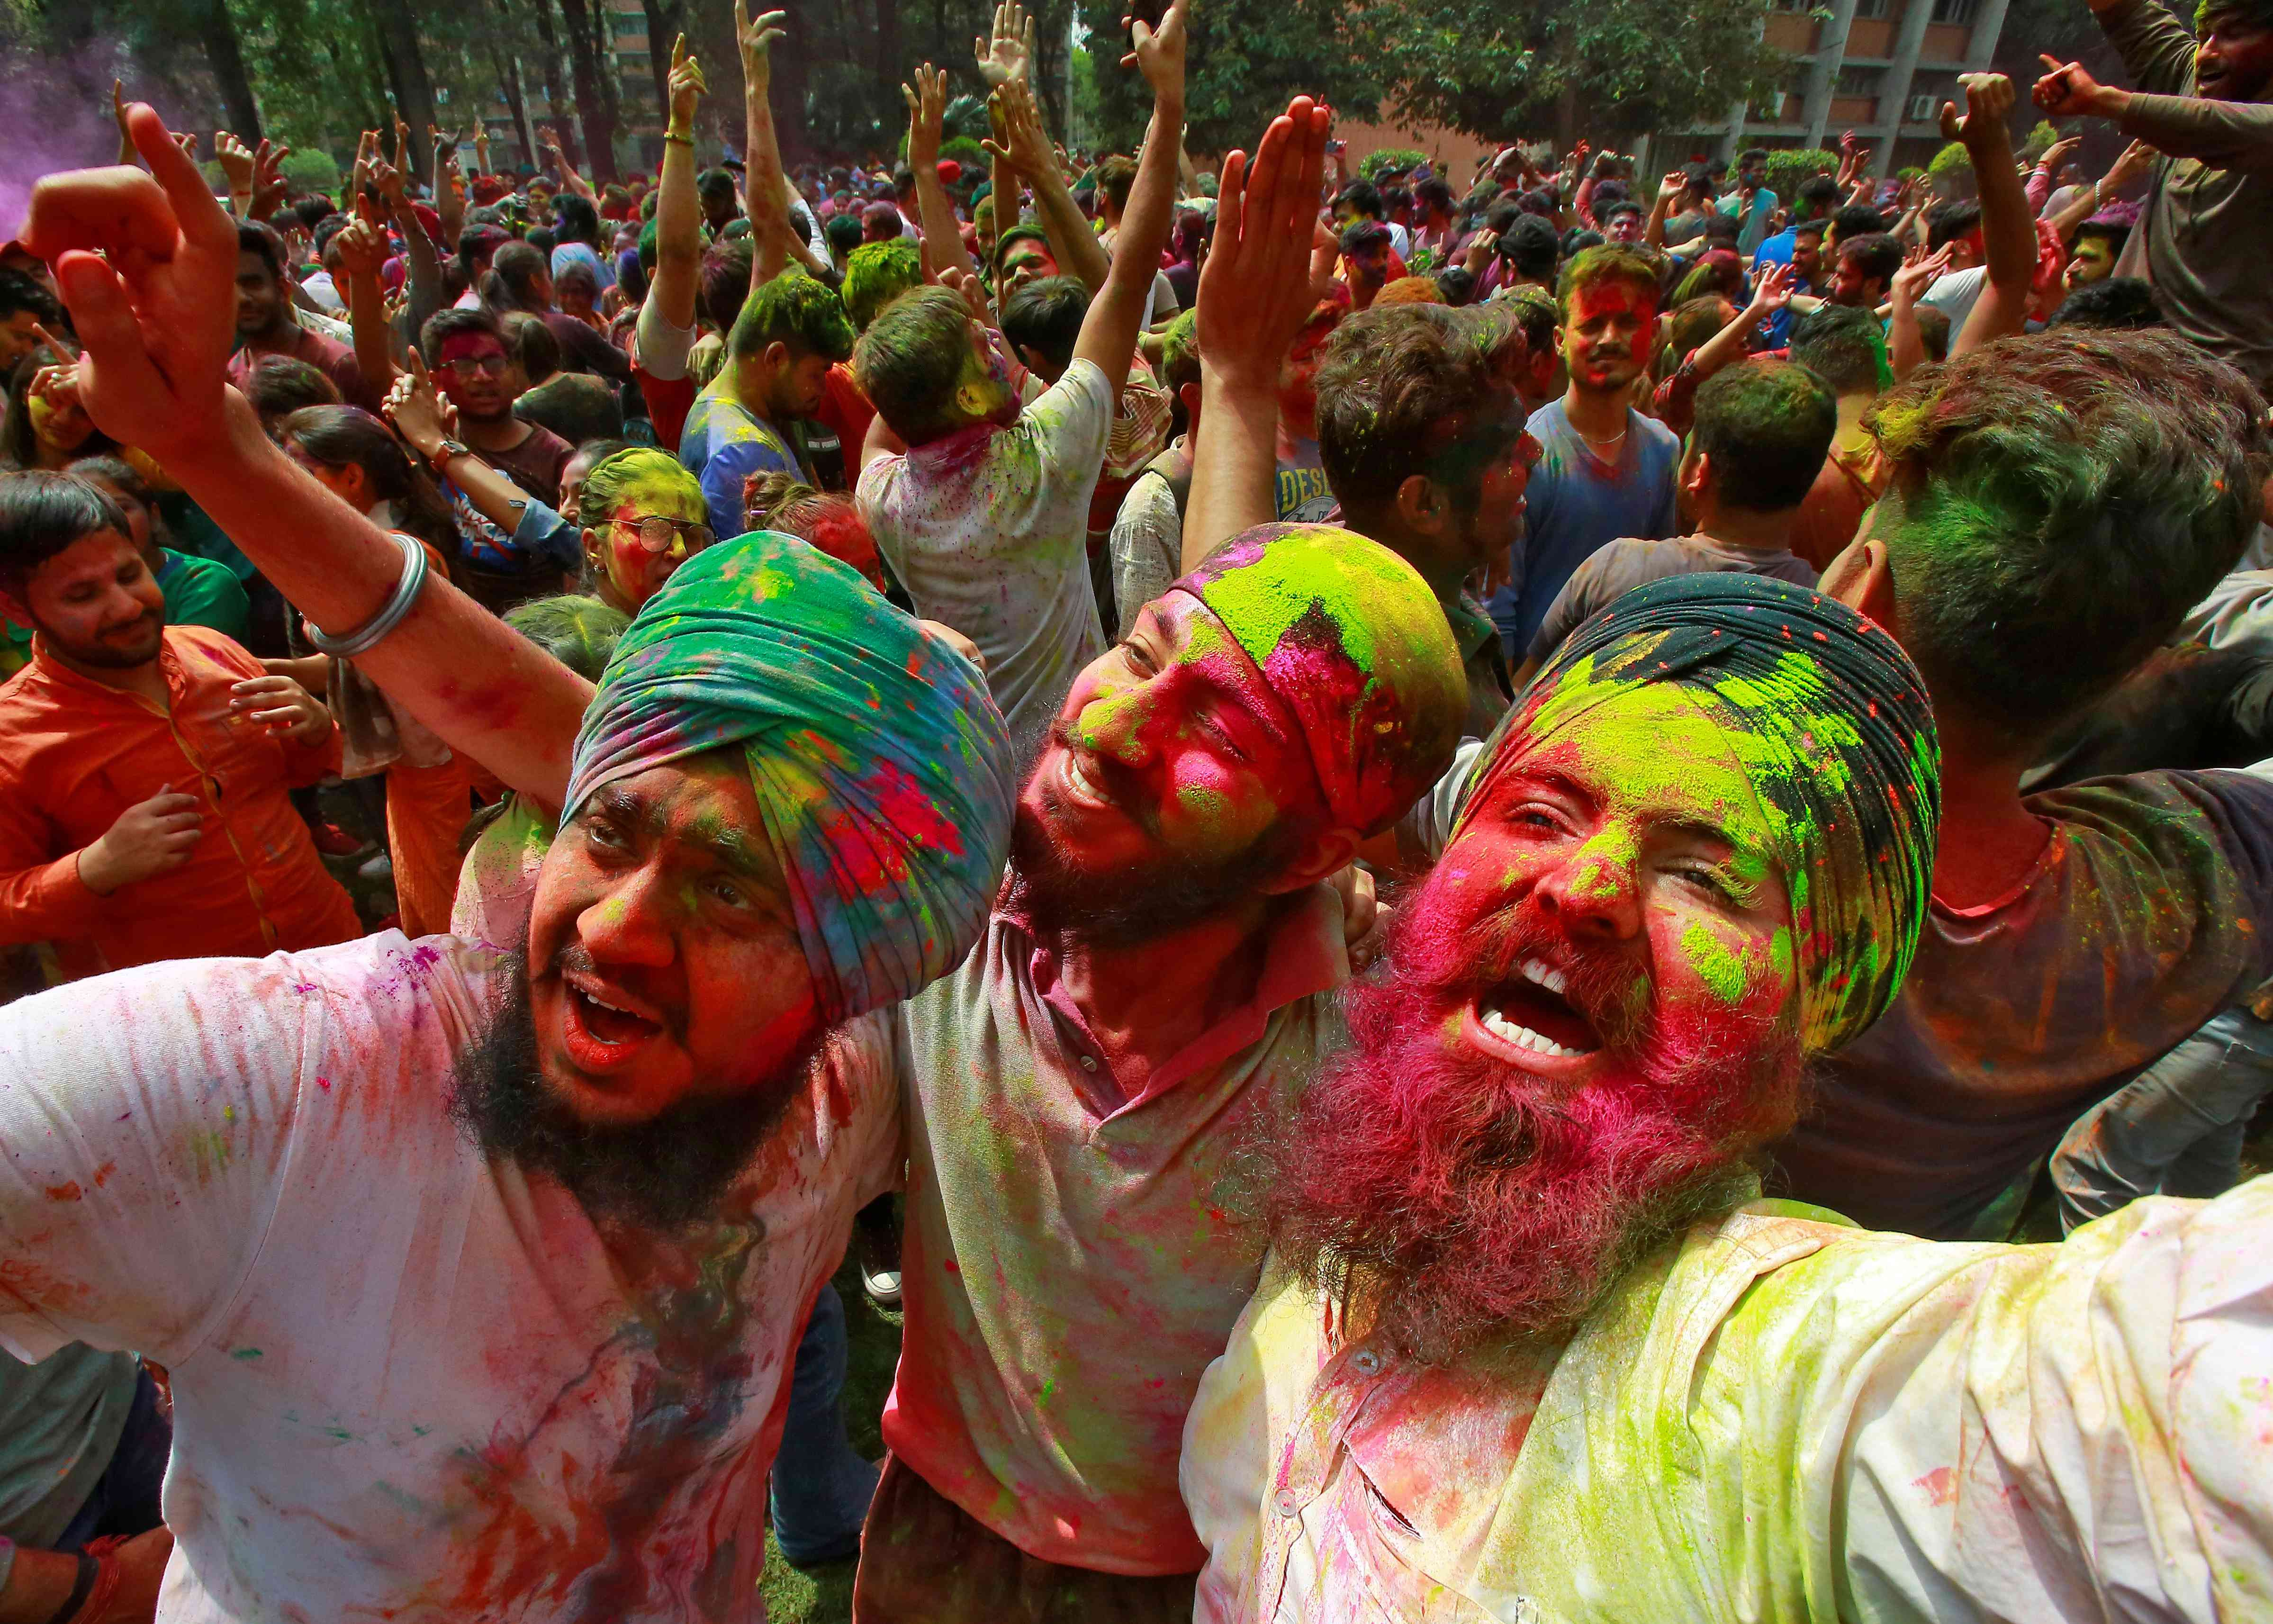 Students with their faces smeared in colours dance as they celebrate Holi on a university campus in Chandigarh. | Credit: Reuters